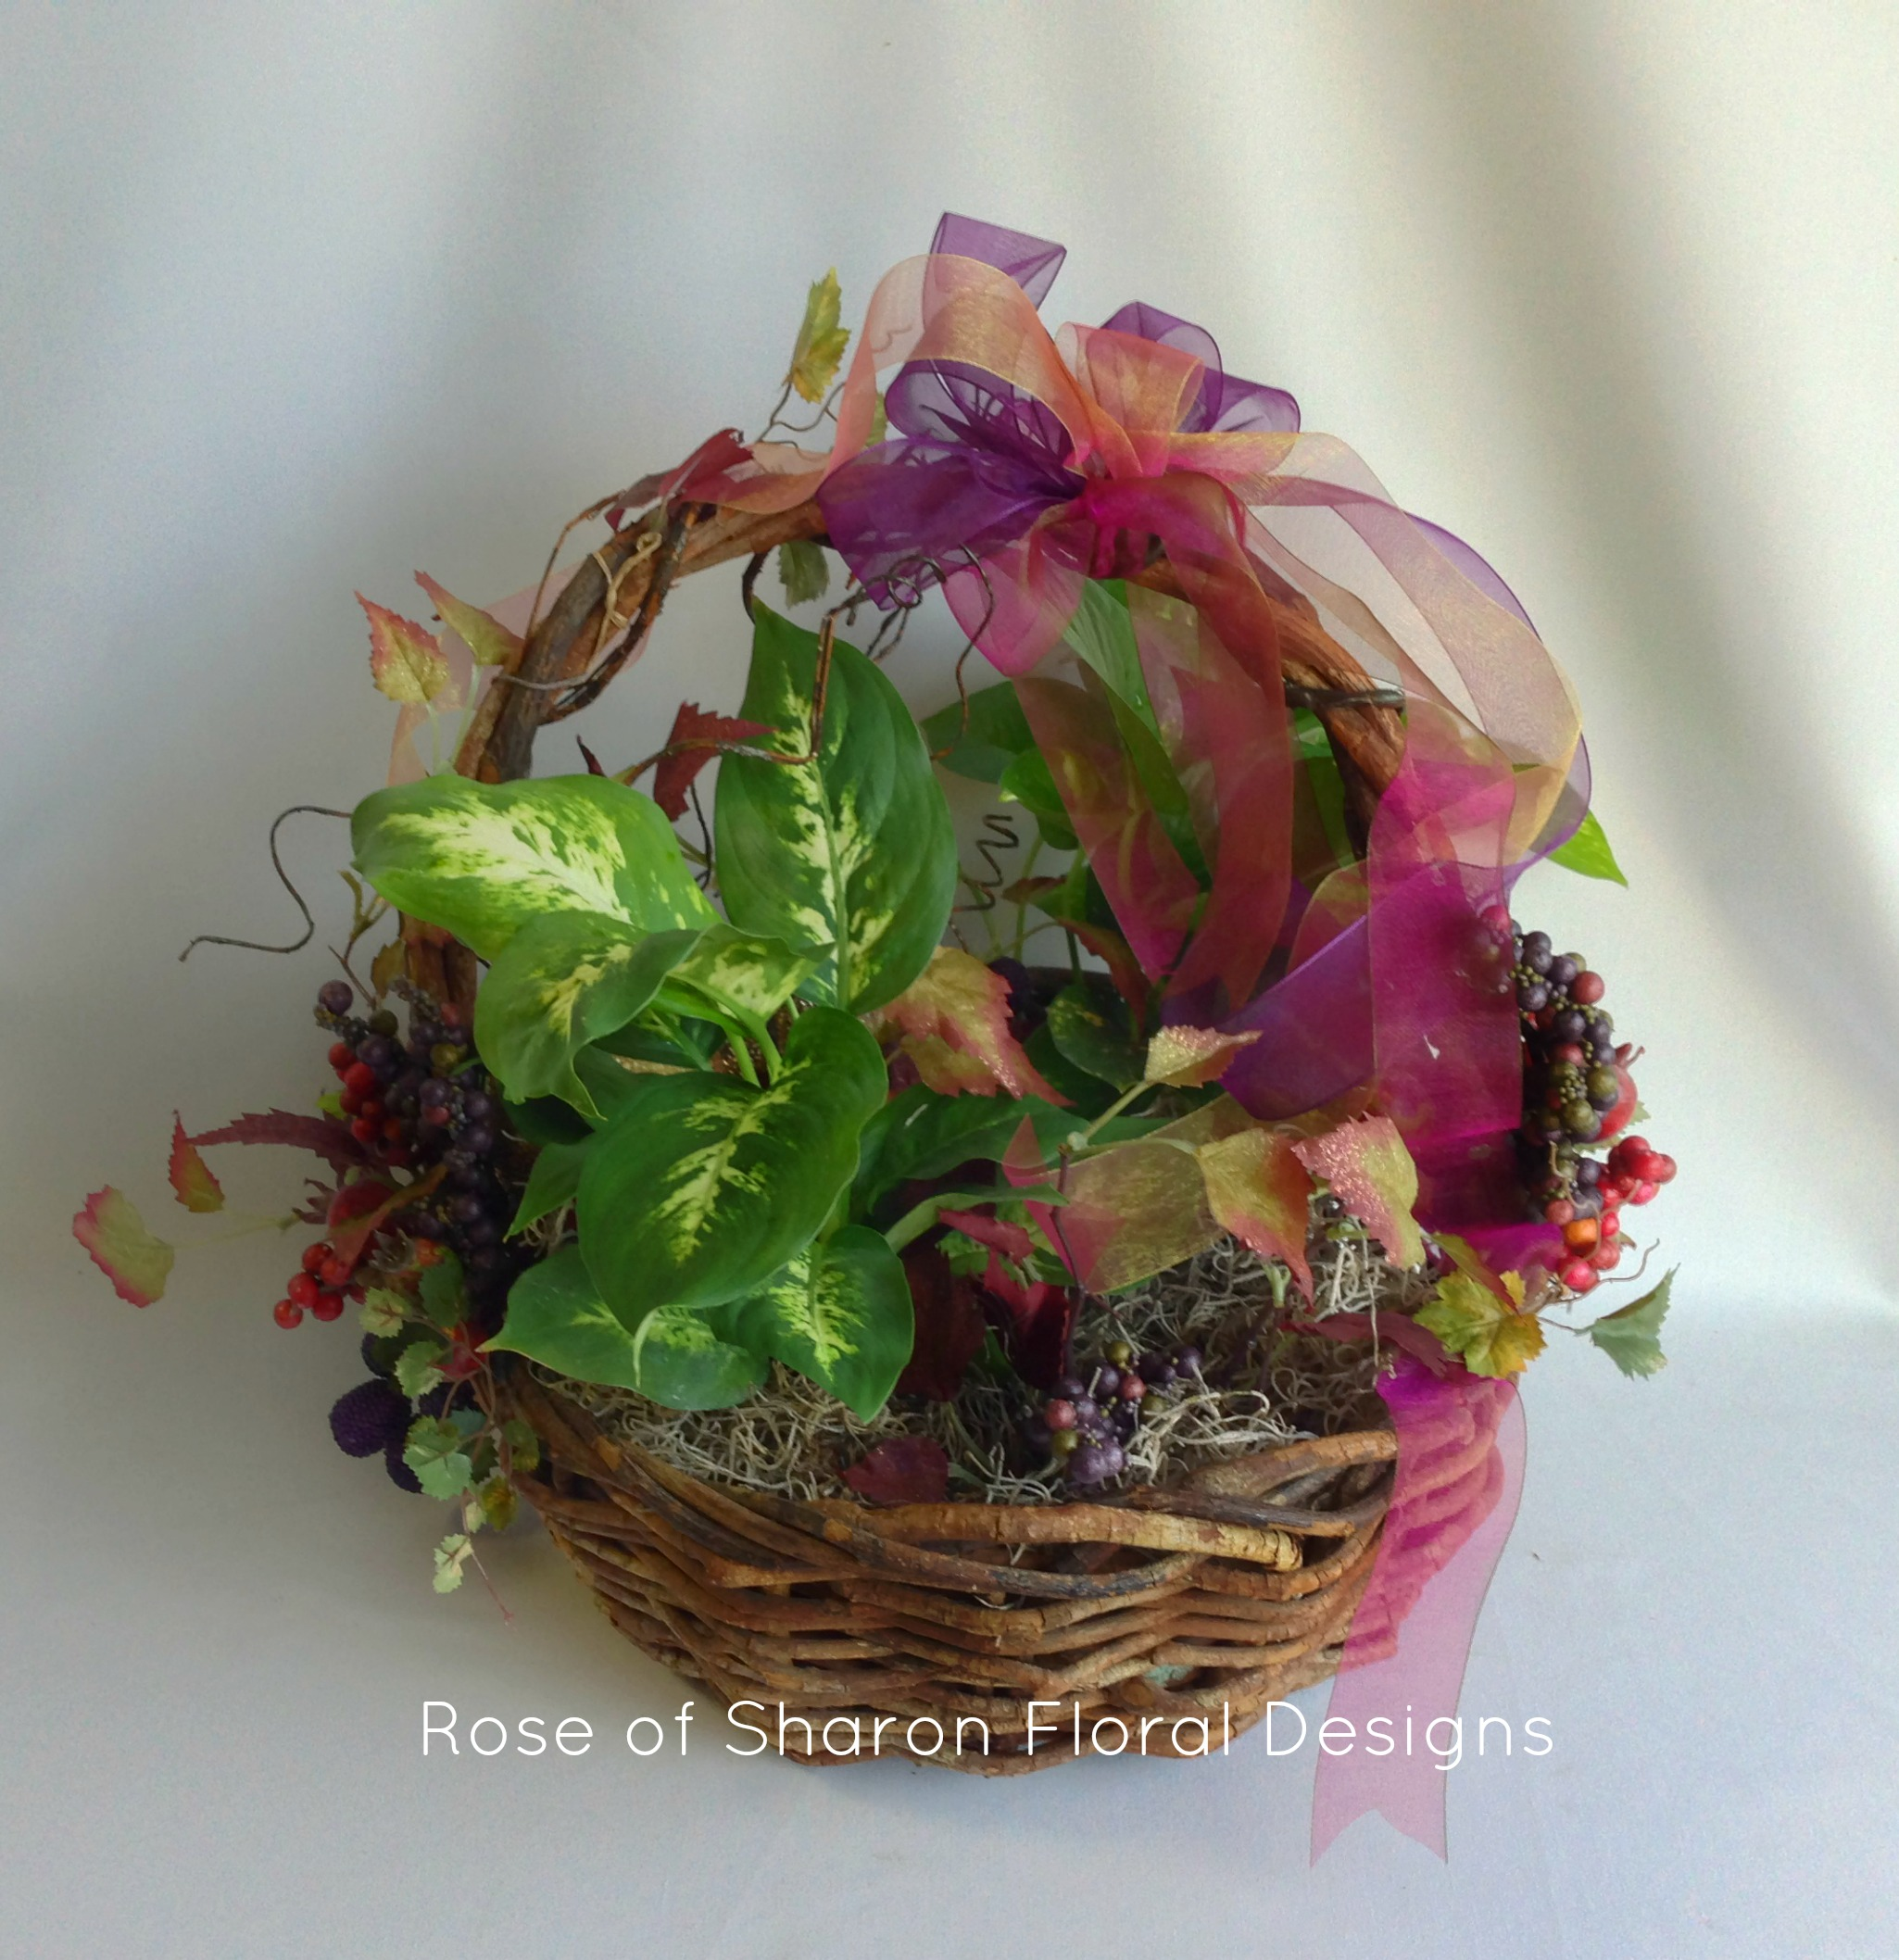 Fall Foliage Basket, Rose of Sharon Floral Designs